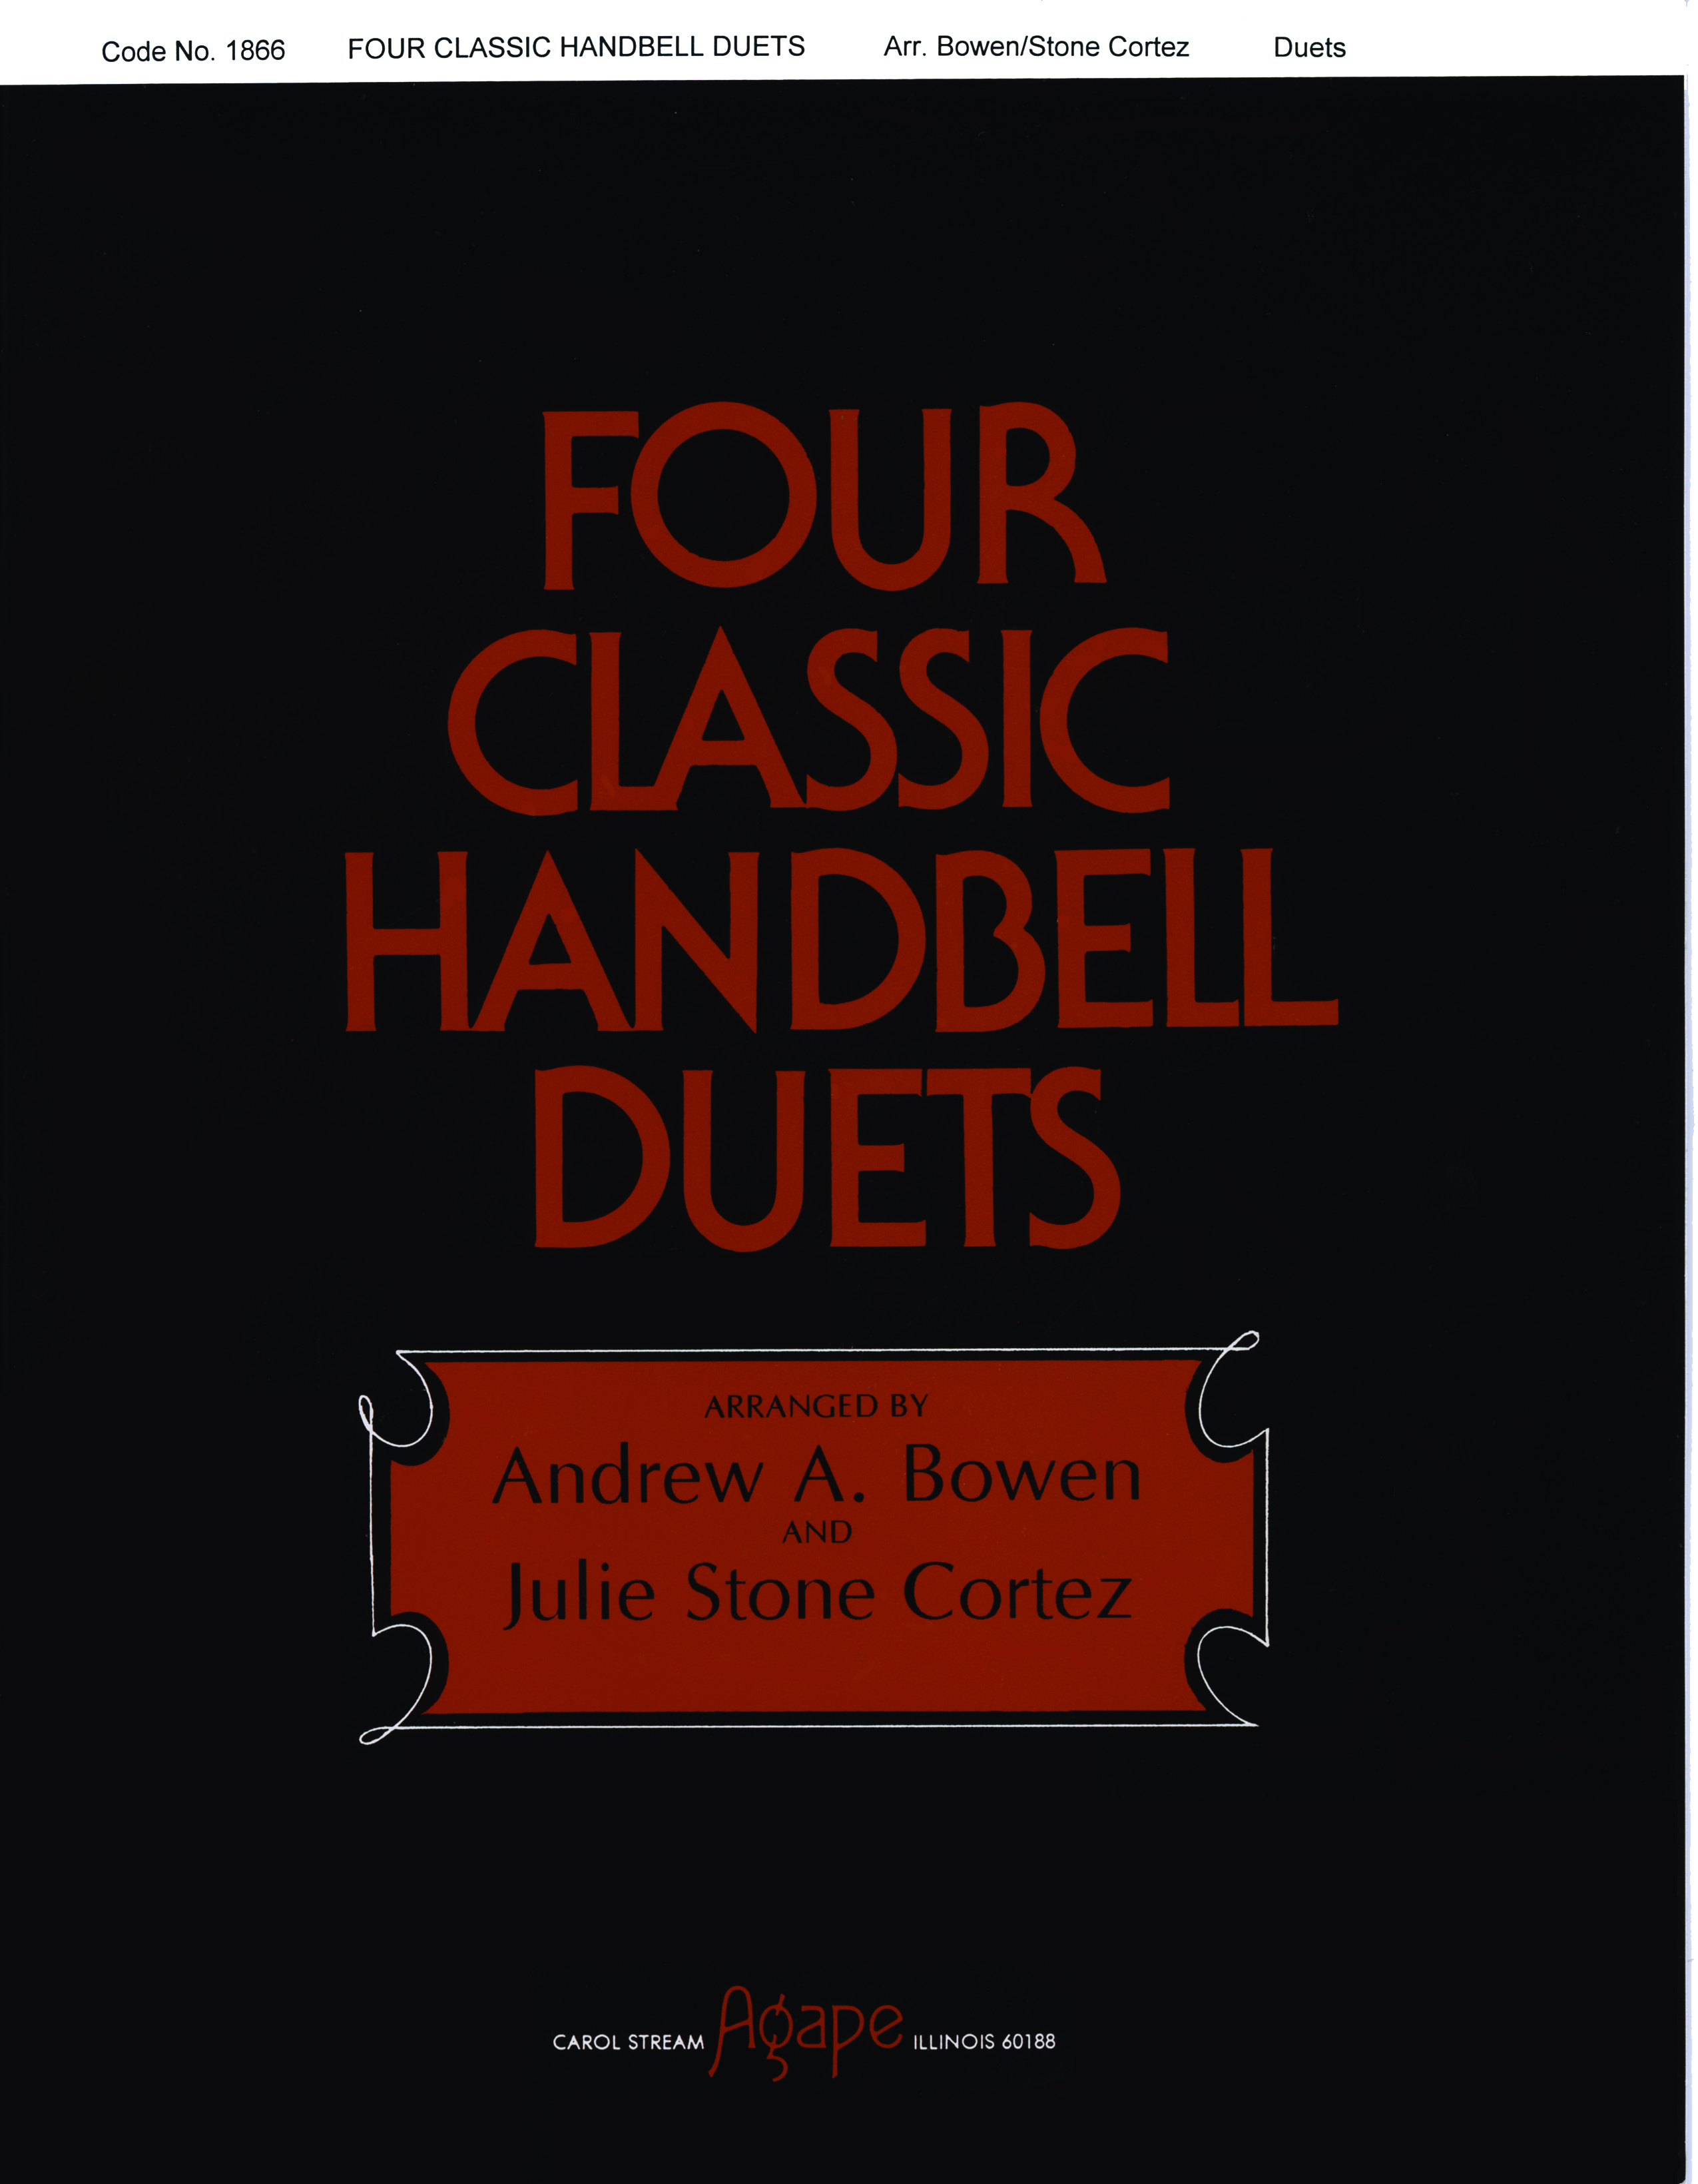 Four Classic Handbell Duets - Collection Cover Image